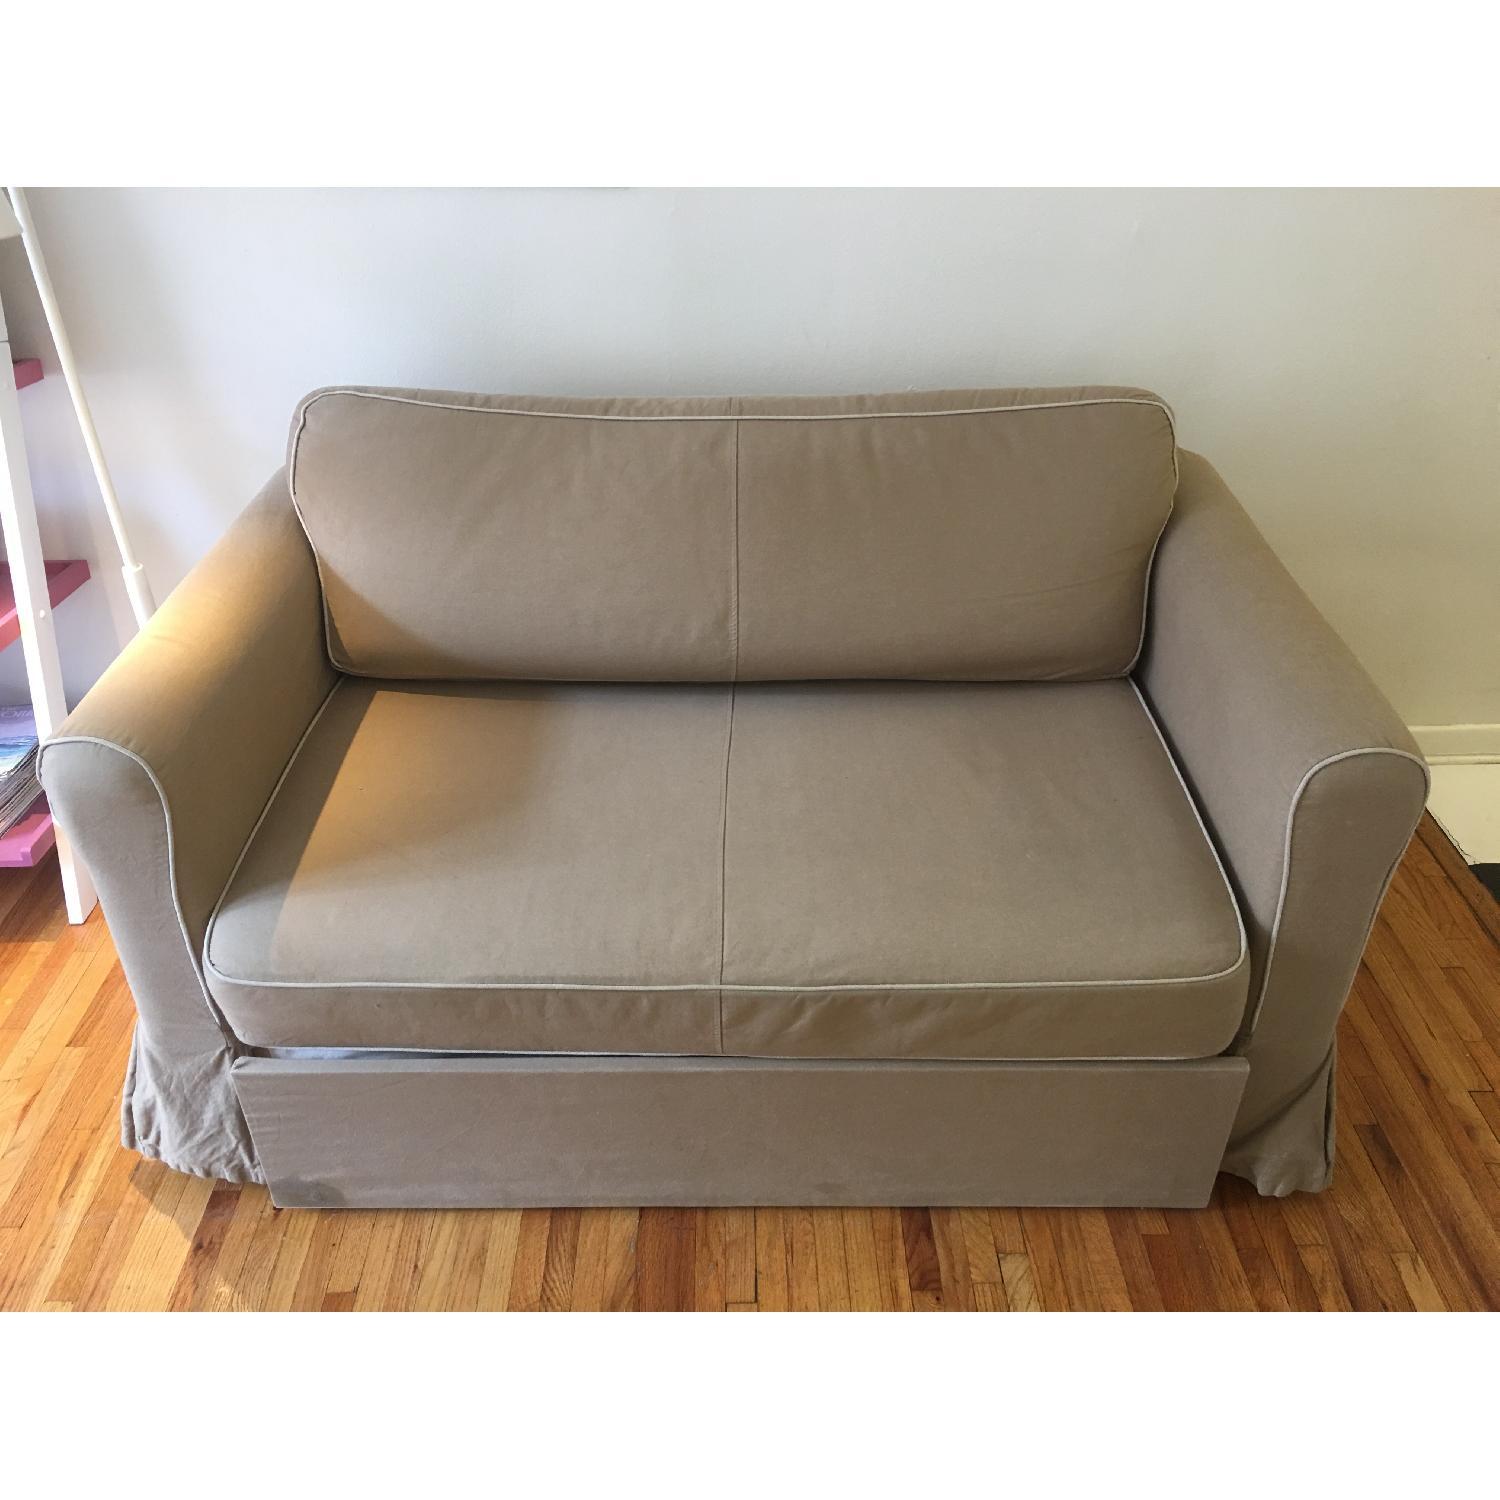 West Elm Beige Fold-Out Couch - image-1